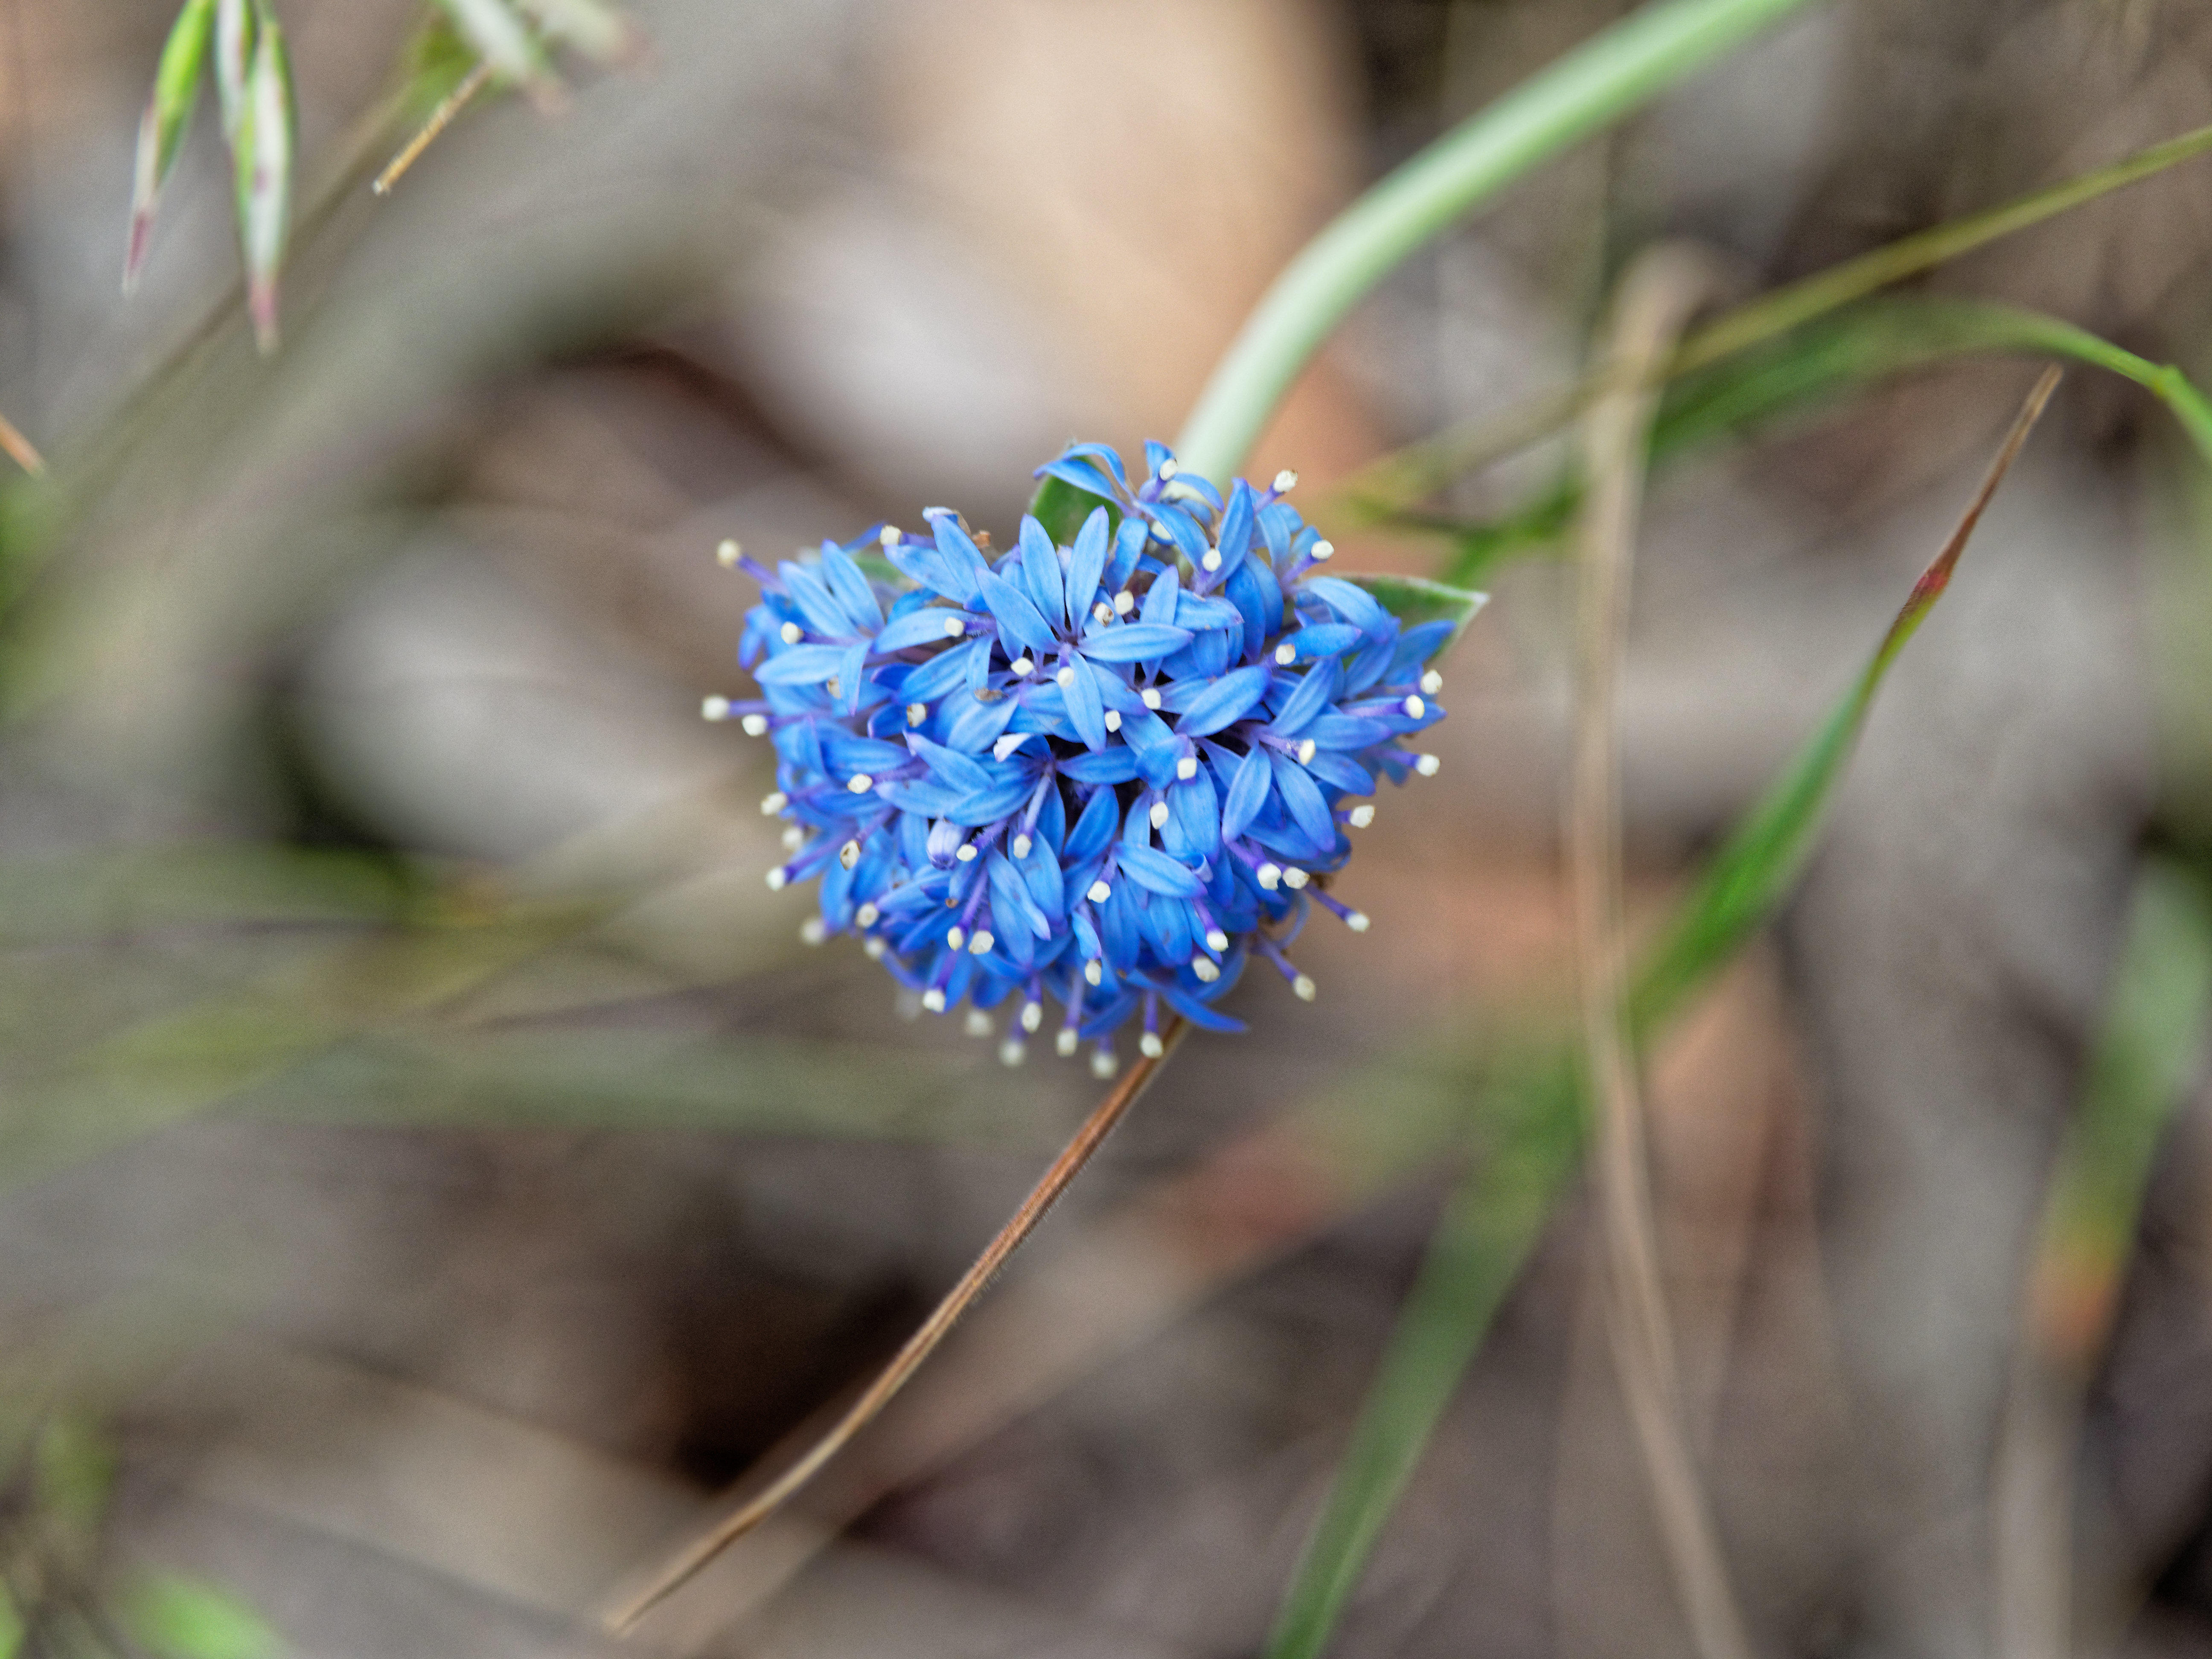 This should be Wildflower-1-2.jpeg.  Is it missing?